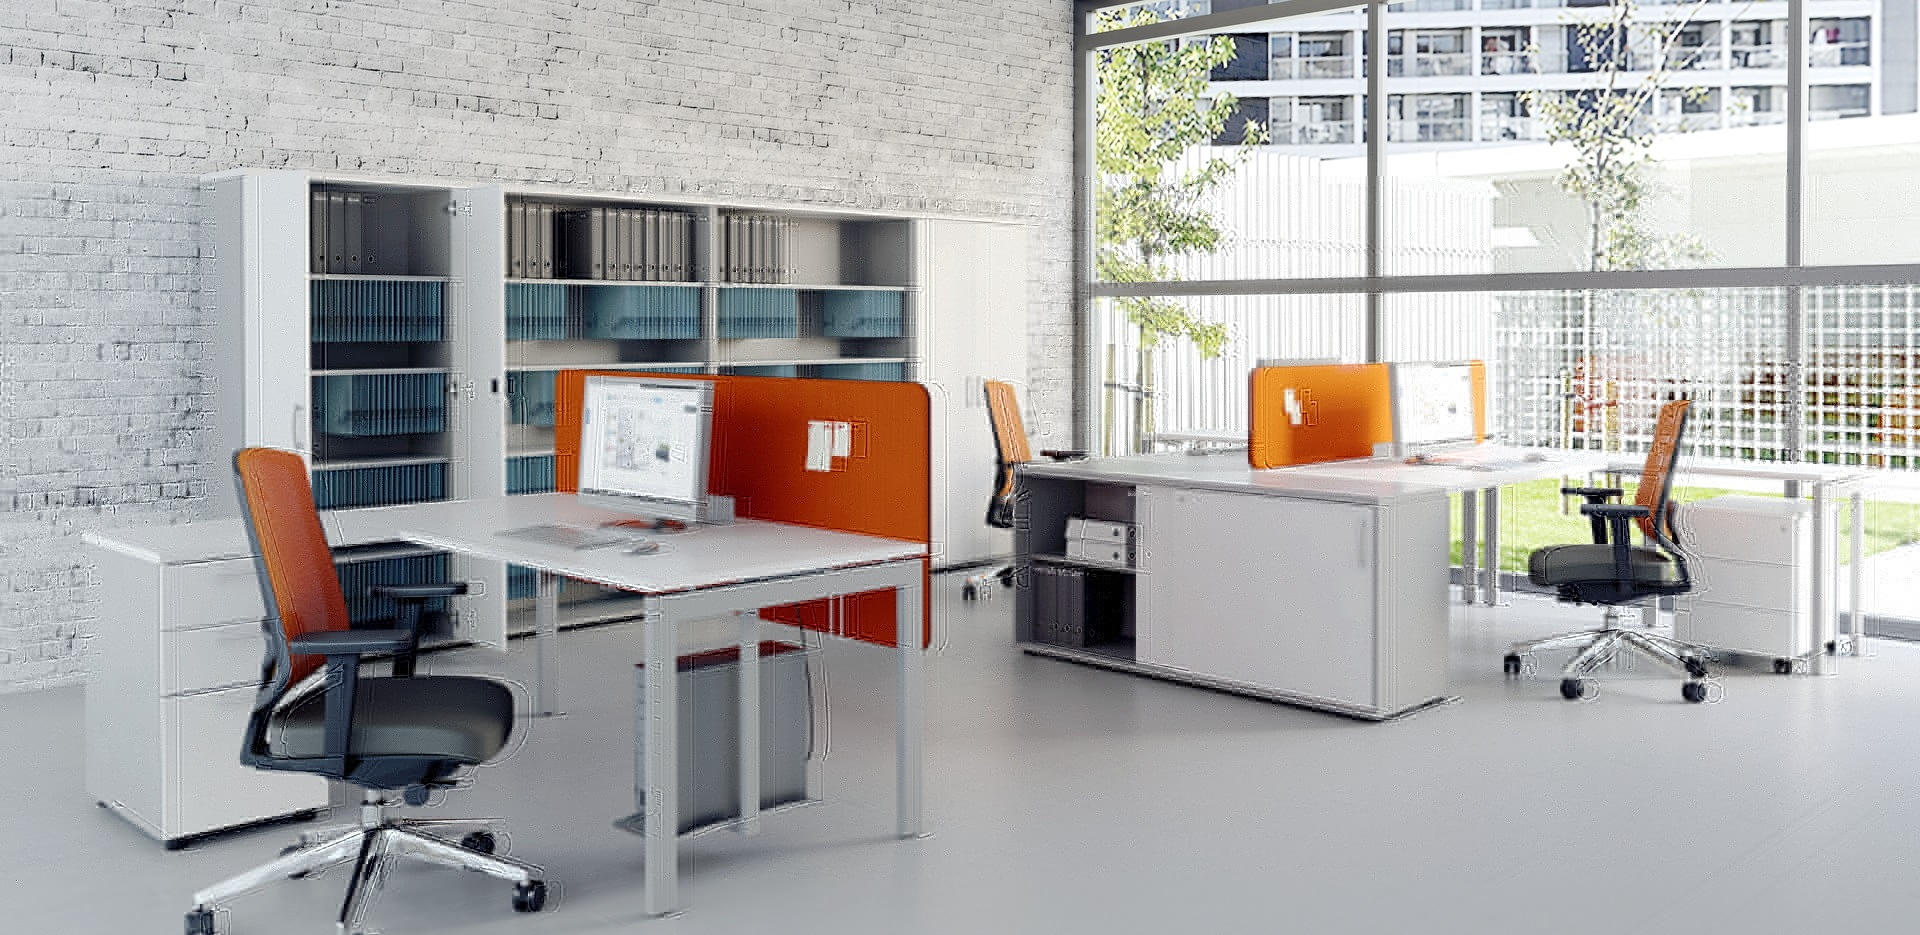 Bureaux en bench pour l 39 am nagement des open spaces - Amenagement bureau open space ...